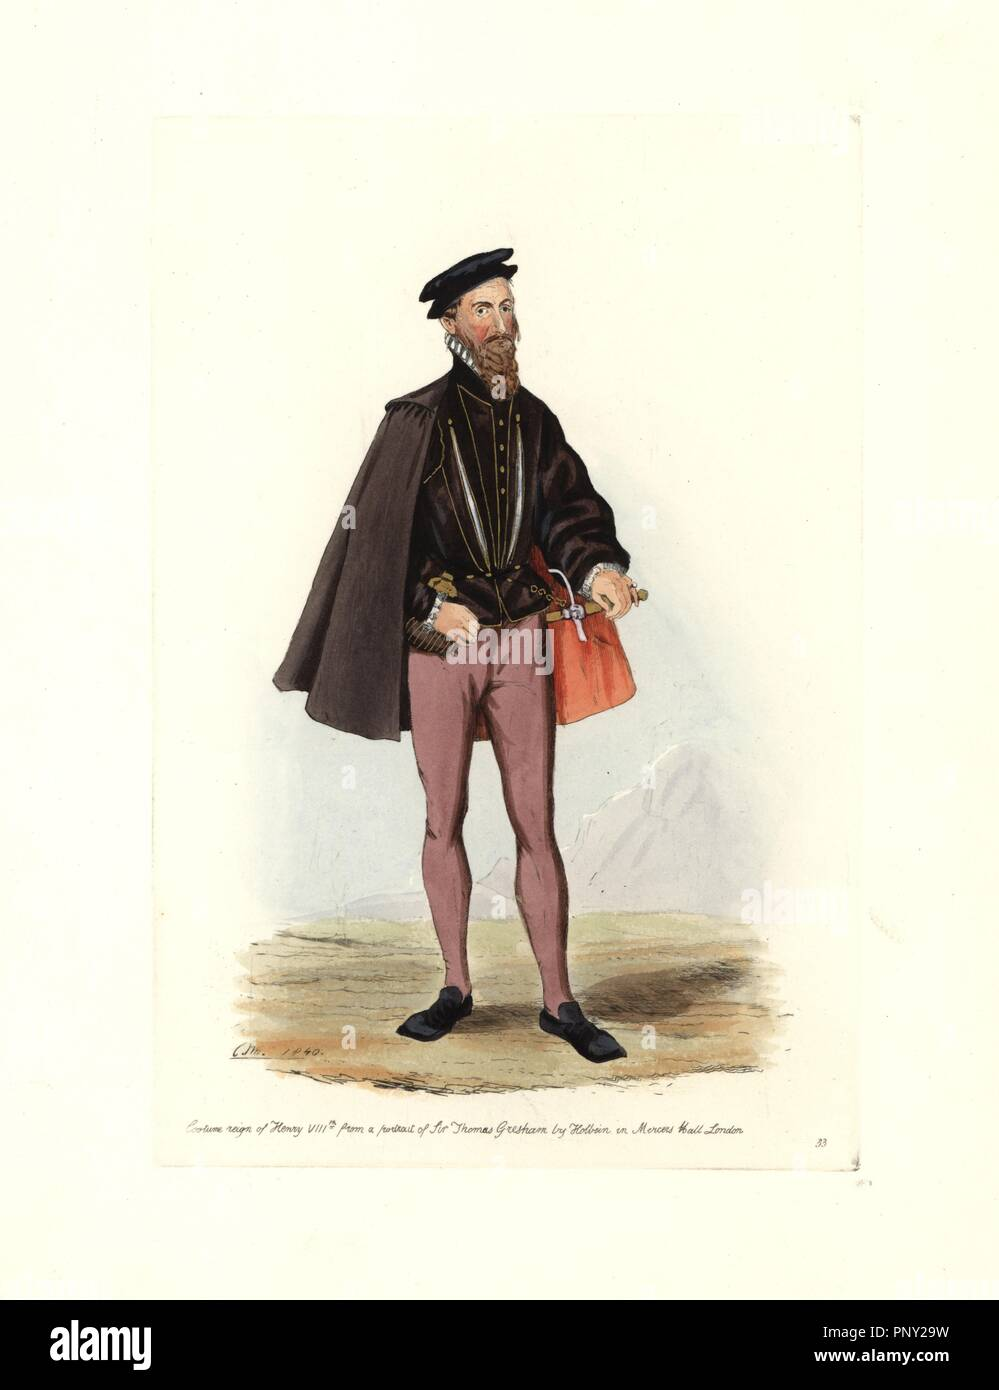 Male costume of the reign of Henry VIII, from a portrait of Sir Thomas Gresham by Holbein in Mercers Hall, London. He wears a slashed jacket, cape, ruff collar, hat, trousers and square-toed shoes. Handcolored engraving from 'Civil Costume of England from the Conquest to the Present Period' drawn by Charles Martin and etched by Leopold Martin, London, Henry Bohn, 1842. The costumes were drawn from tapestries, monumental effigies, illuminated manuscripts and portraits. Charles and Leopold Martin were the sons of the romantic artist and mezzotint engraver John Martin (1789-1854). - Stock Image